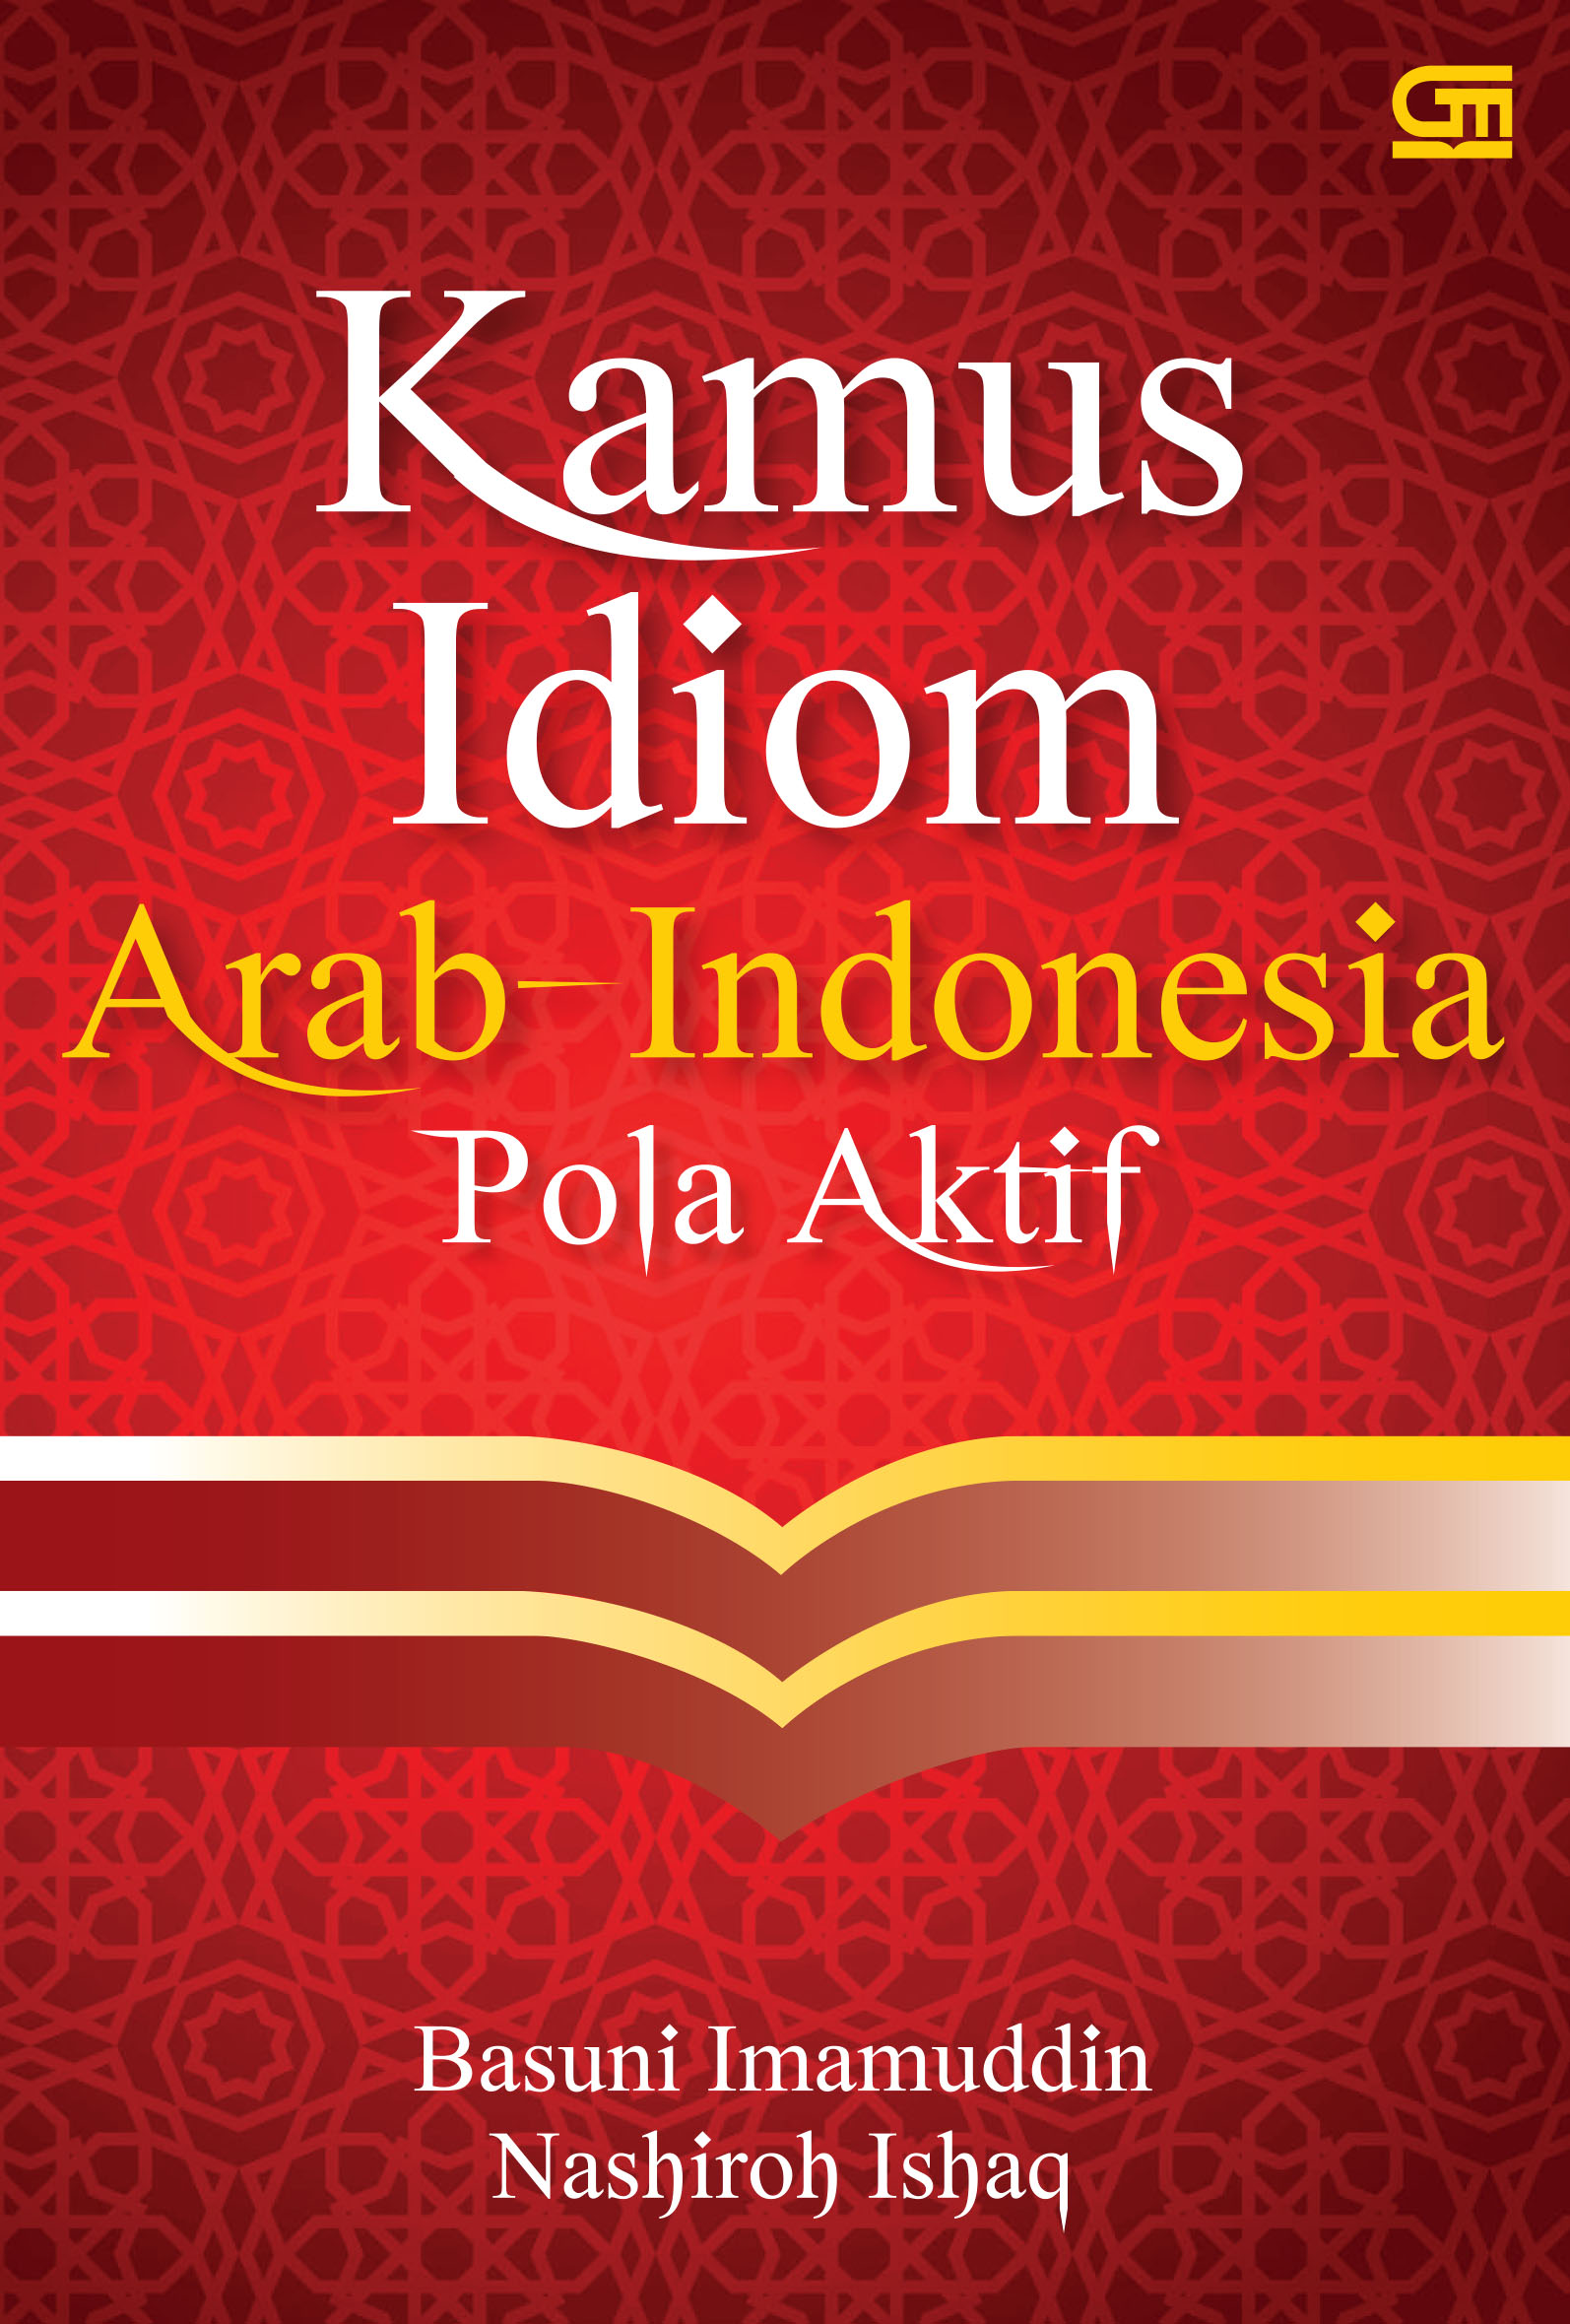 Kamus Idiom Arab - Indonesia Pola Aktif (Cover baru)